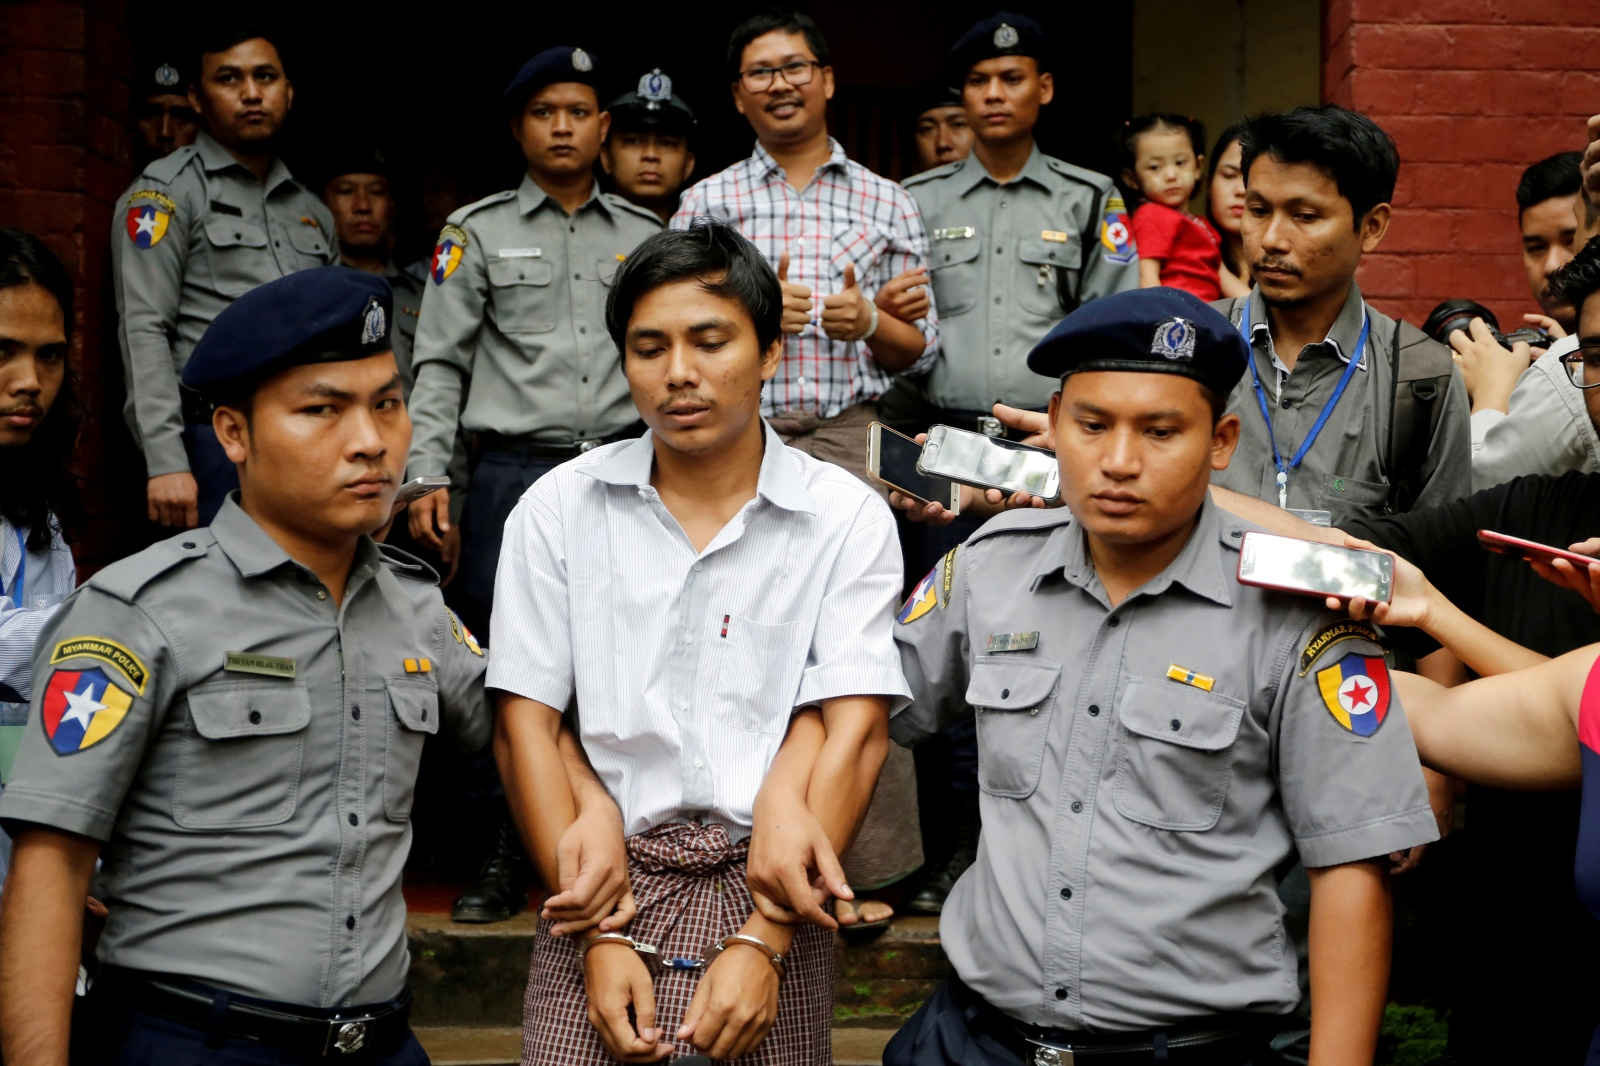 qz.com - Mary Hui - Myanmar won't free the Pulitzer Prize-winning journalists who uncovered a massacre